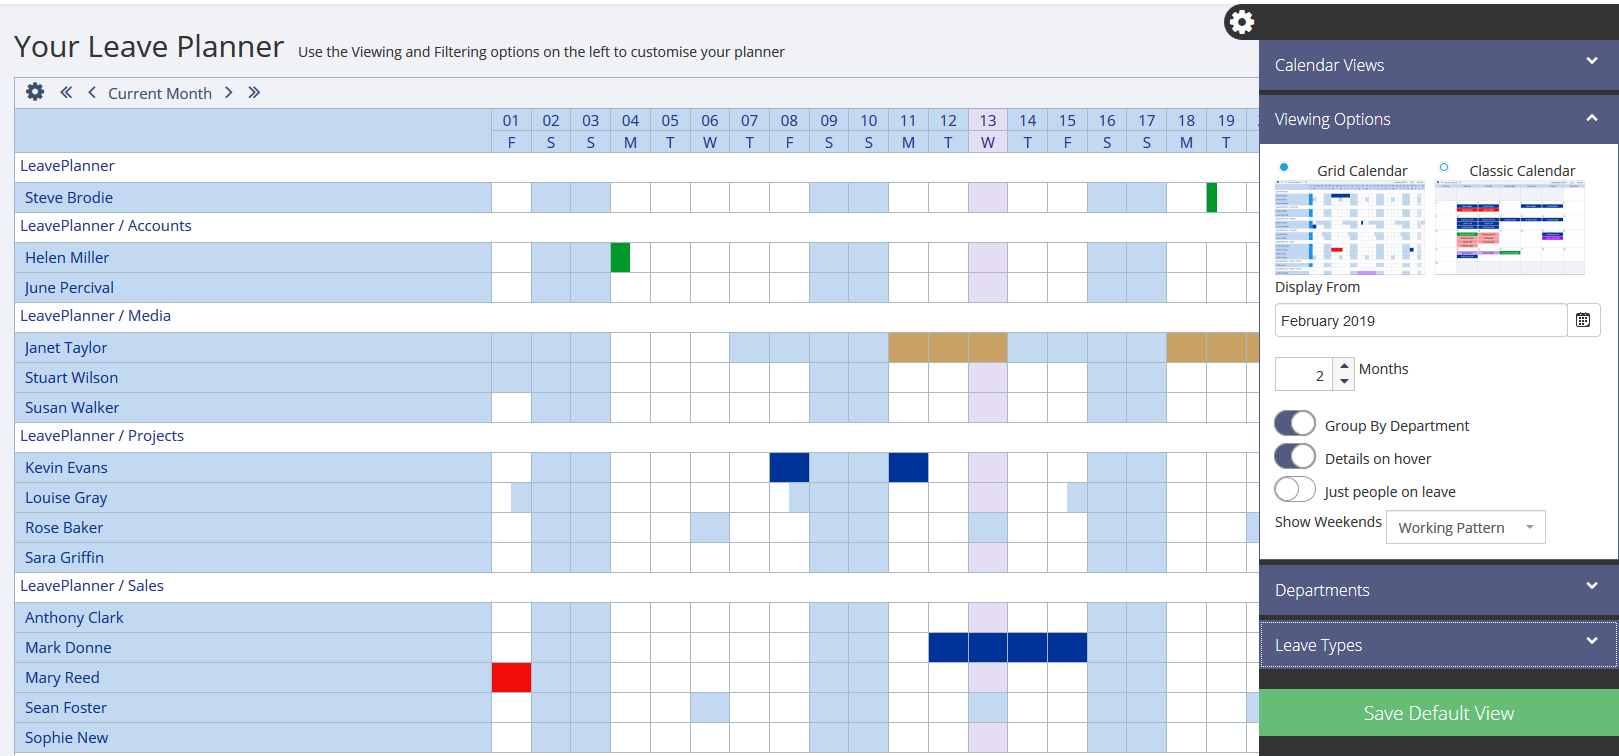 Viewing Options on the LeavePlanner Calendar in Grid View